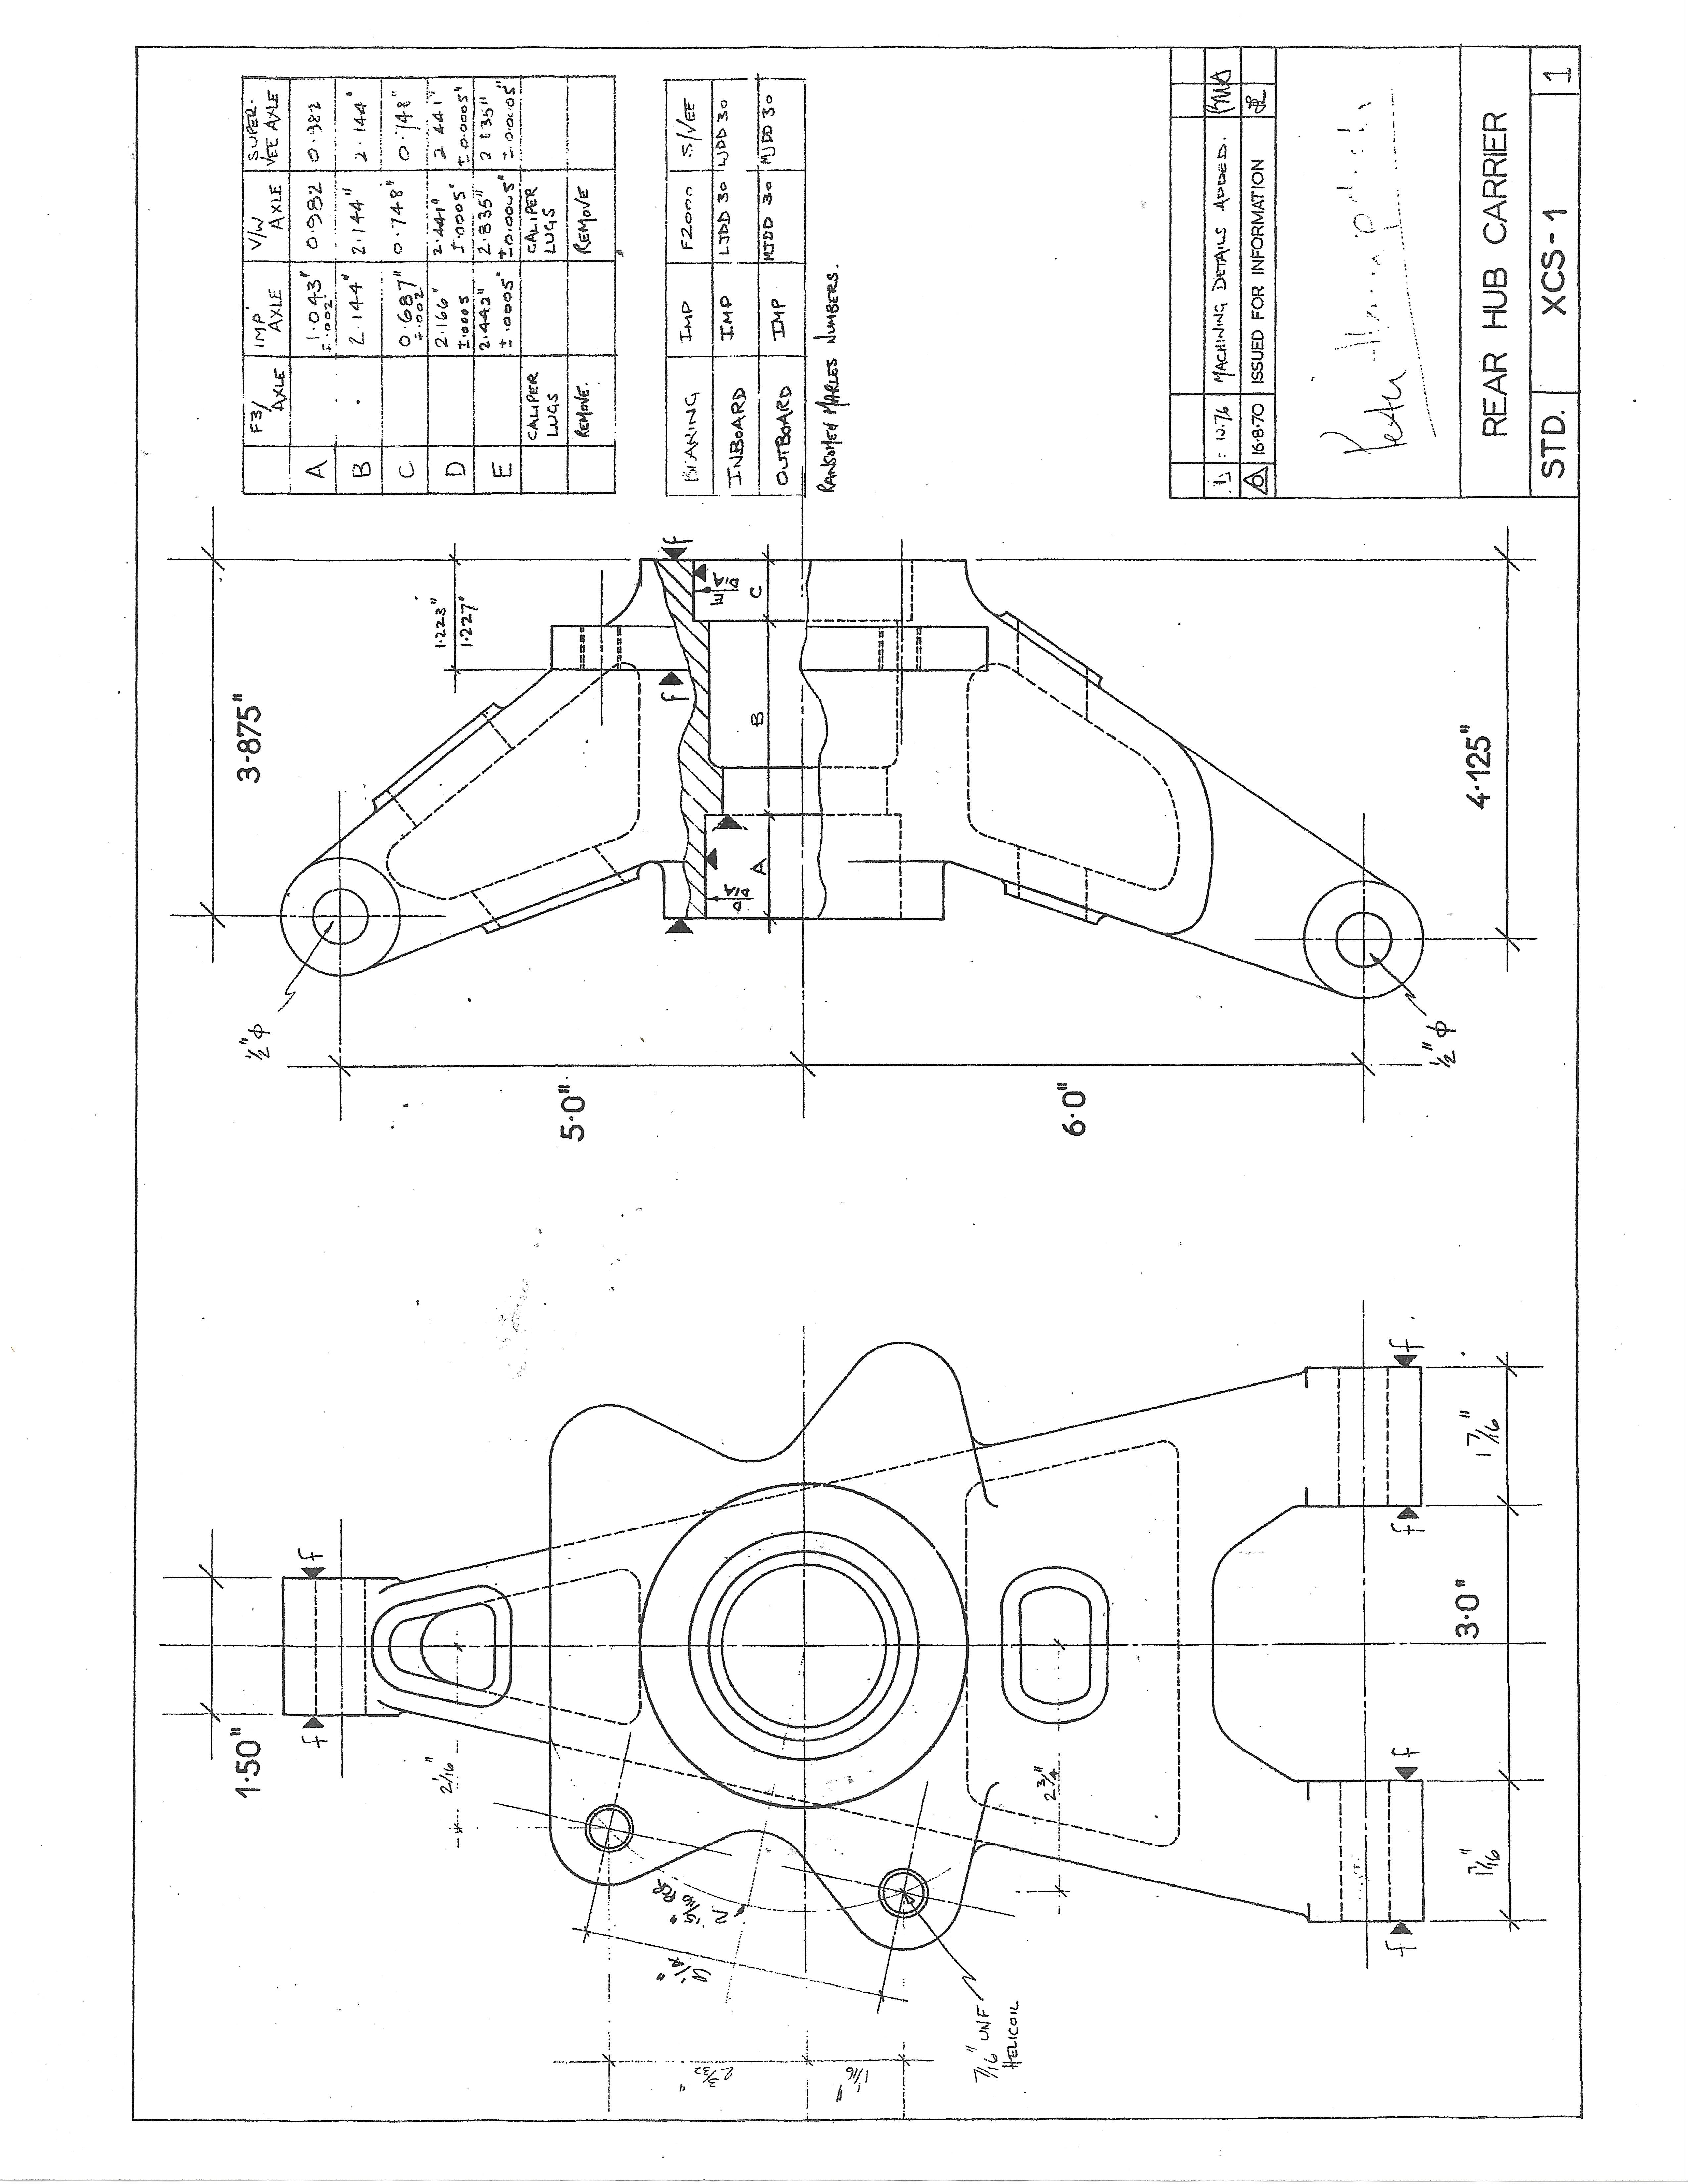 Elden Formula Ford Mk10 Chassis Drawings